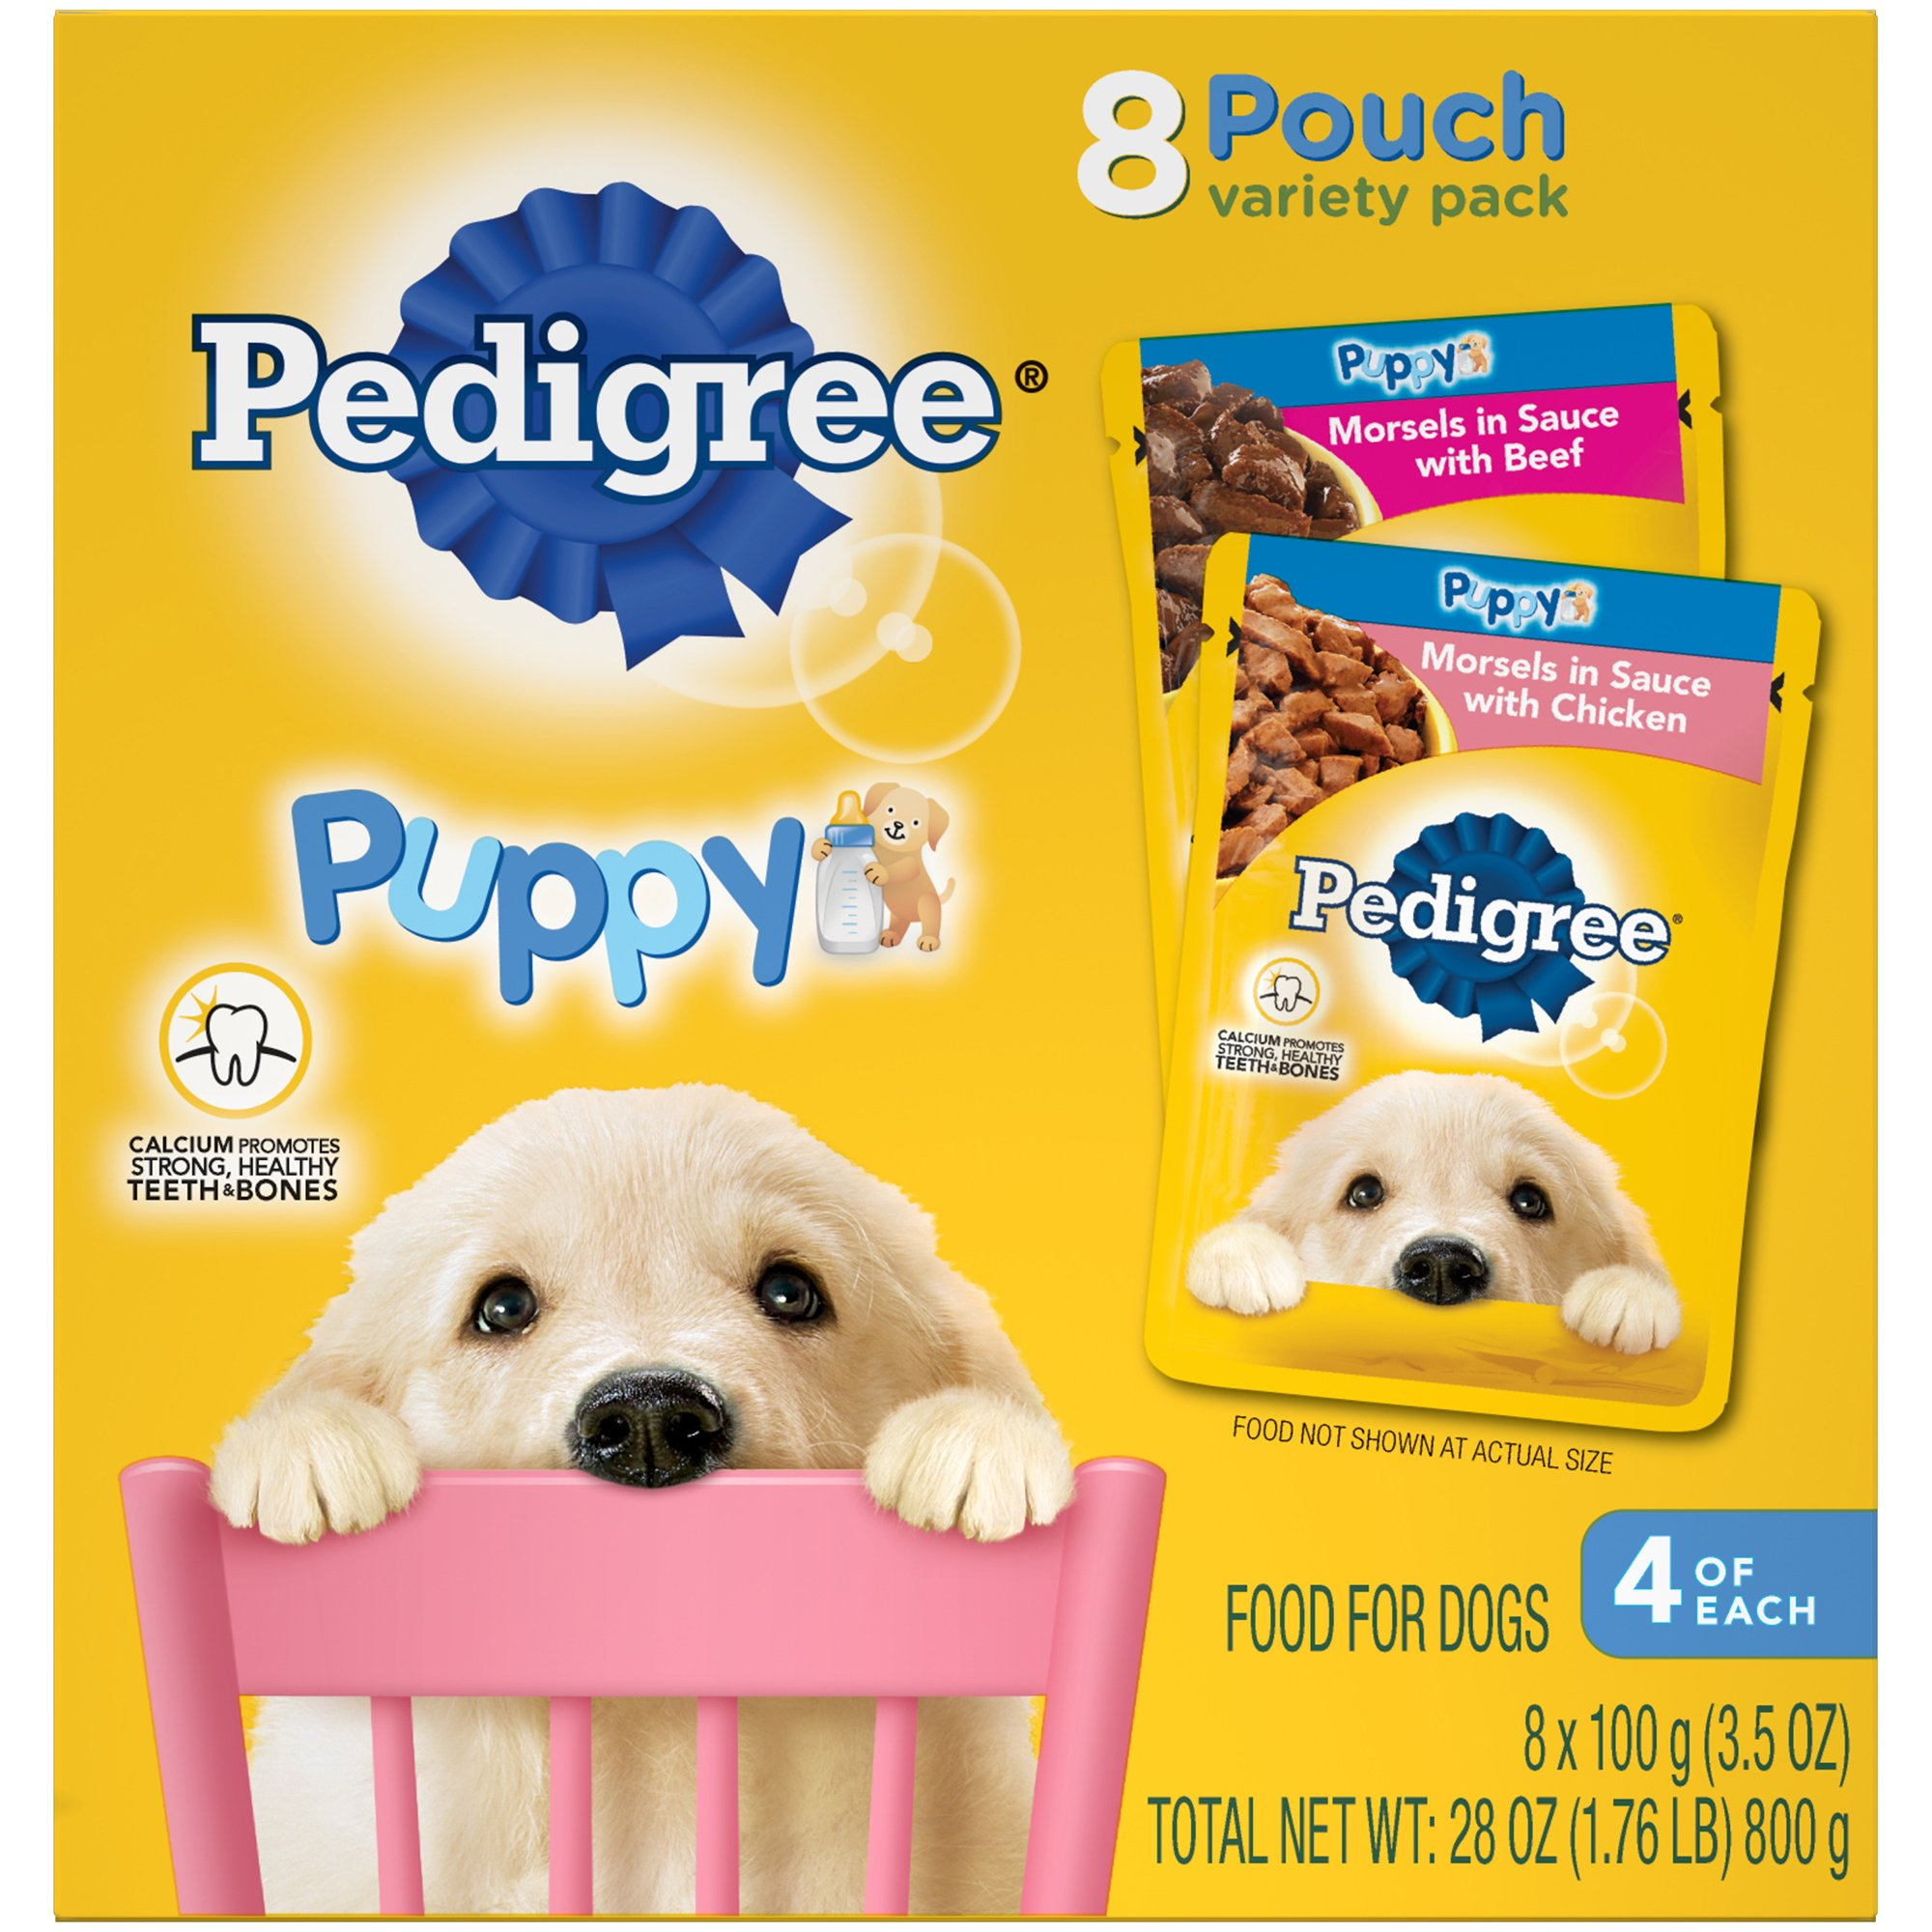 Pedigree CHOICE CUTS Puppy Morsels in Sauce Wet Dog Food Variety Pack Chicken Beef, (16) 3.5 oz. Pouches